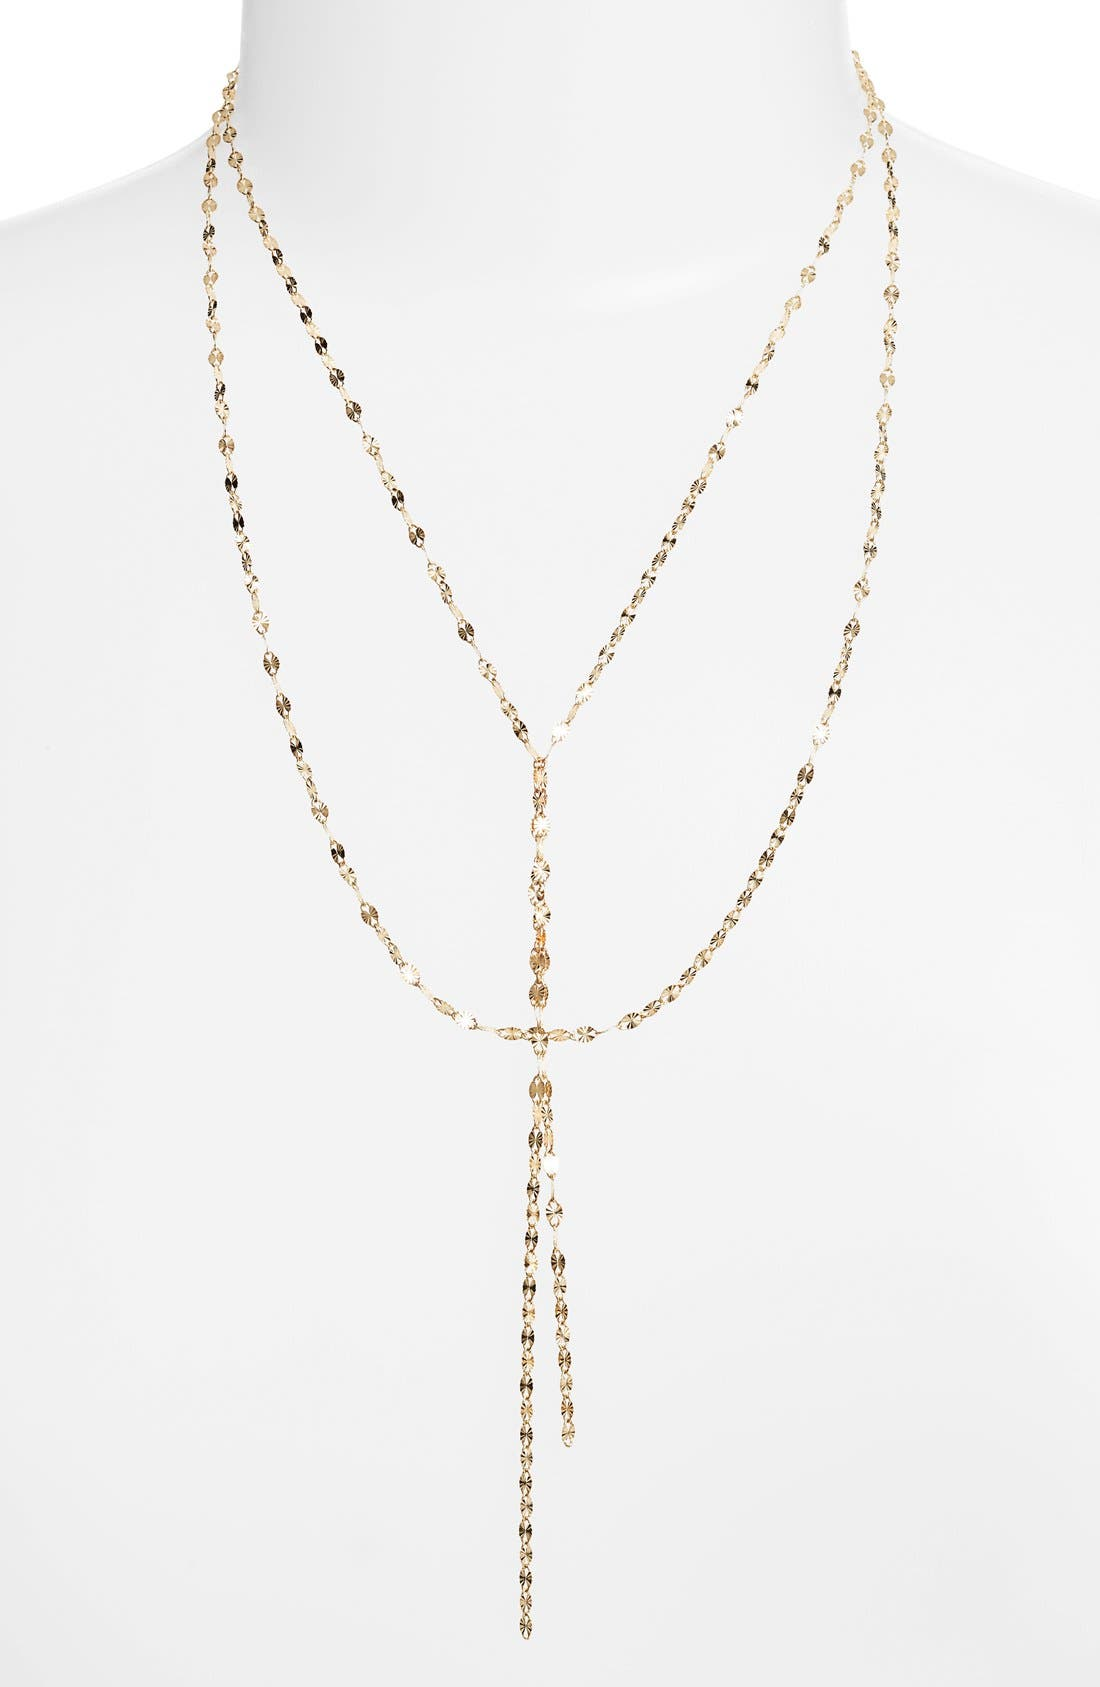 'Mega Blake' Lariat Necklace,                             Main thumbnail 1, color,                             YELLOW GOLD